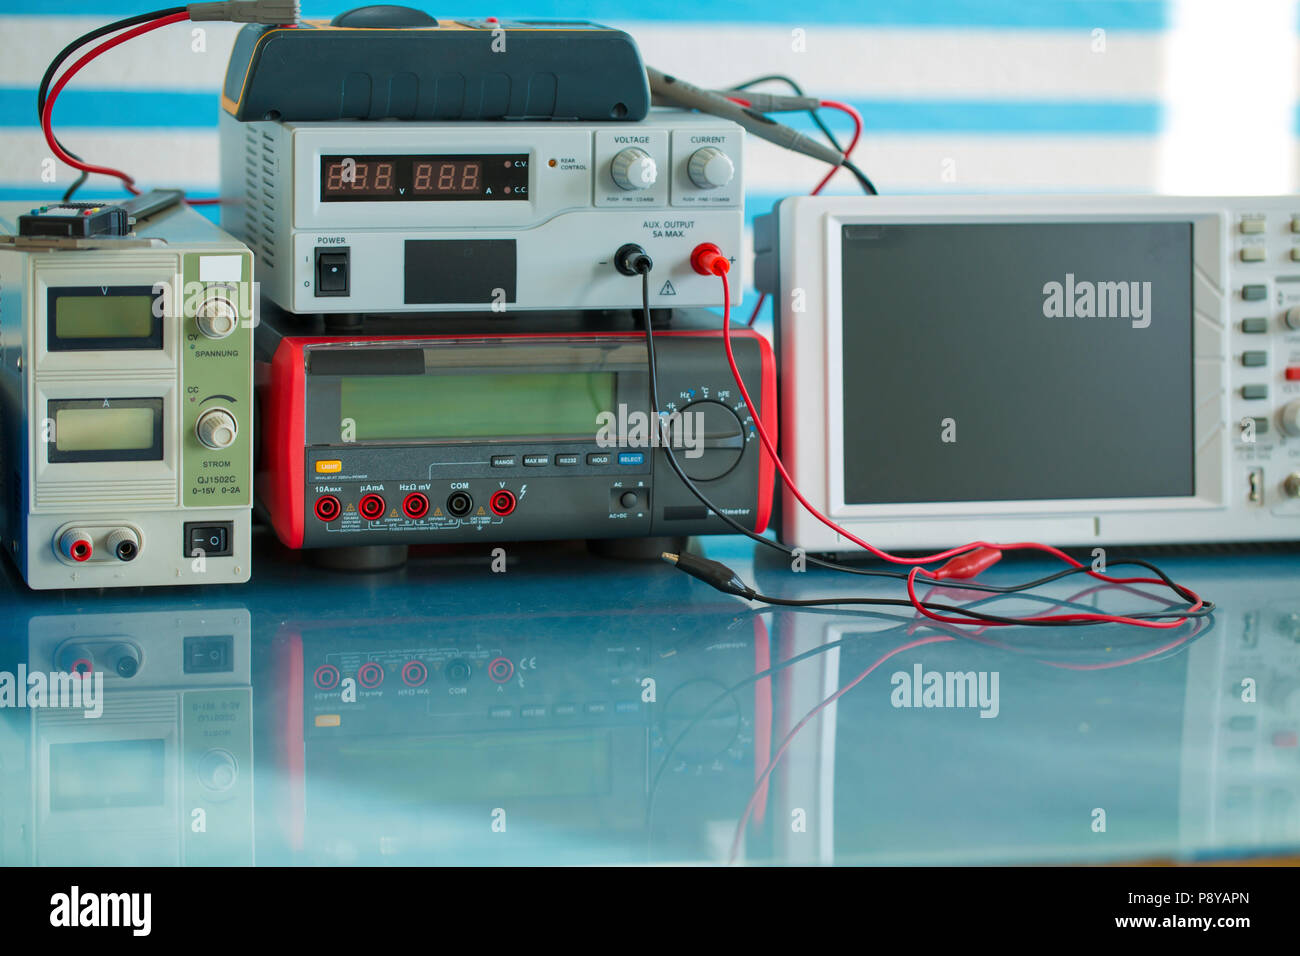 Electronic Wires Stock Photos & Electronic Wires Stock Images - Alamy